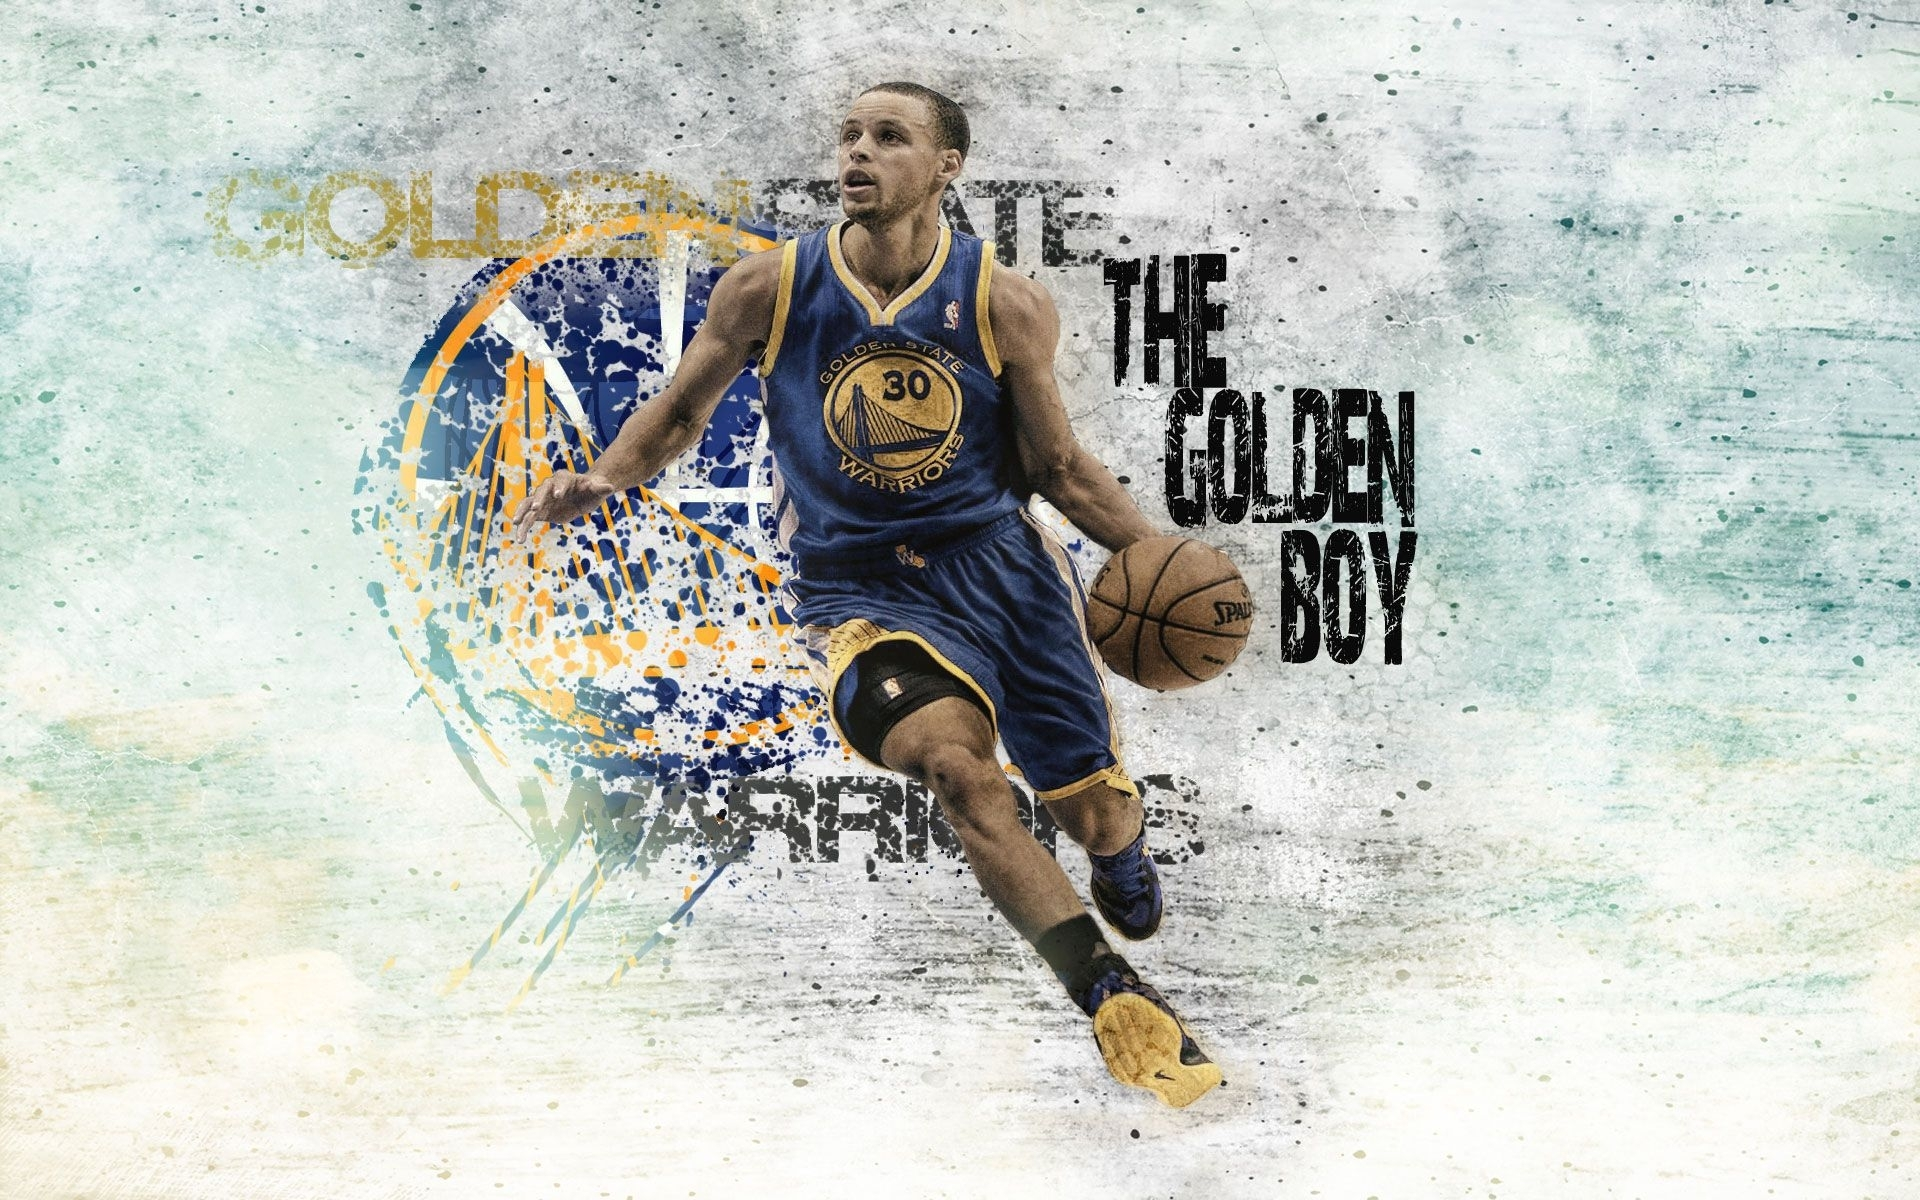 stephen curry wallpaper logo - 2018 wallpapers hd | stephen curry